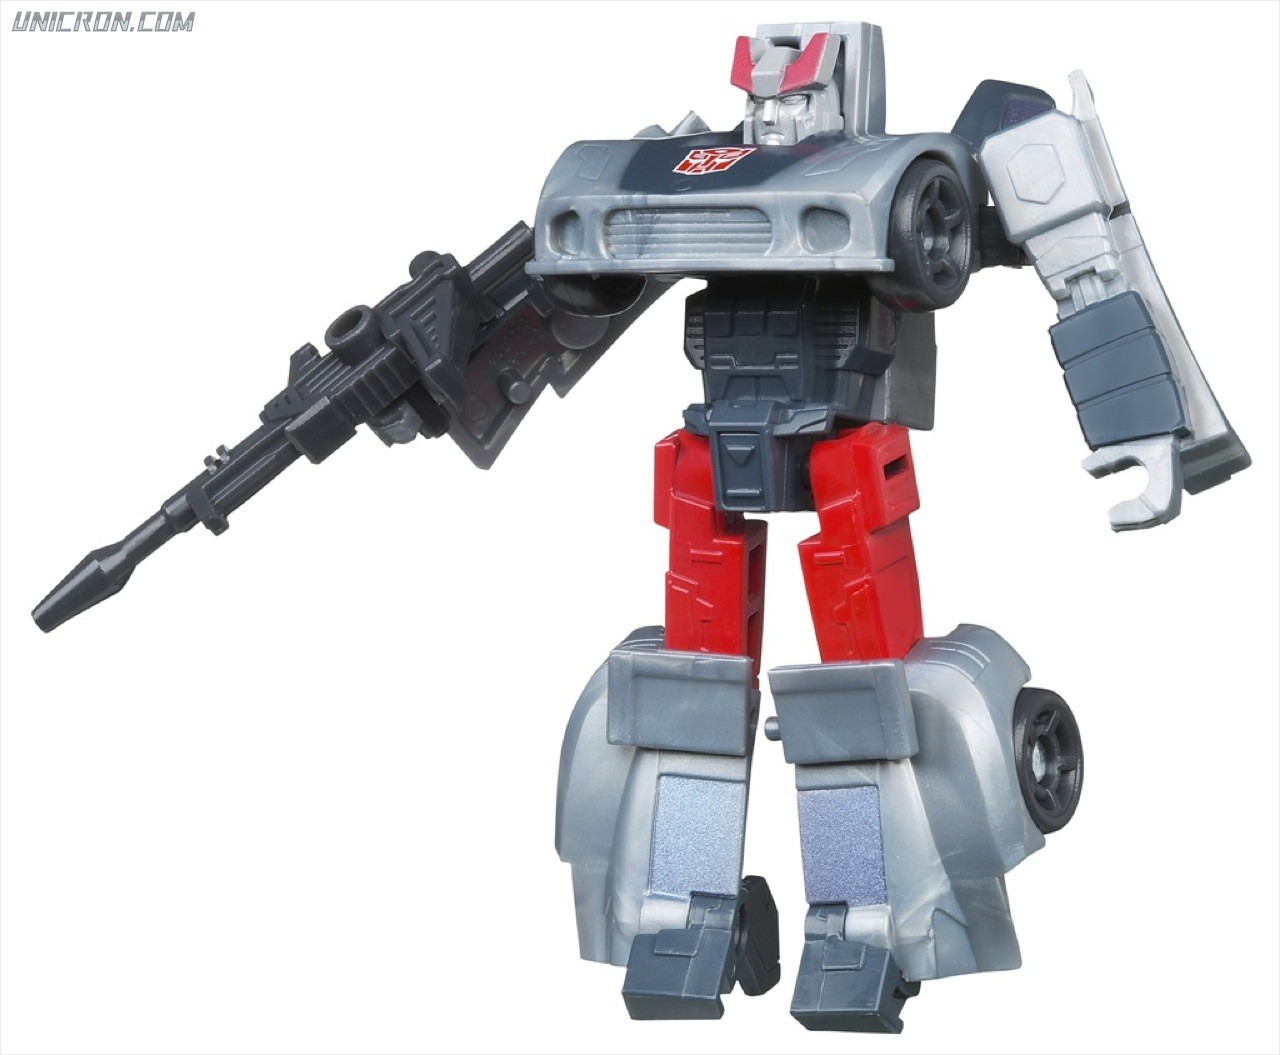 Transformers Generations Bluestreak toy